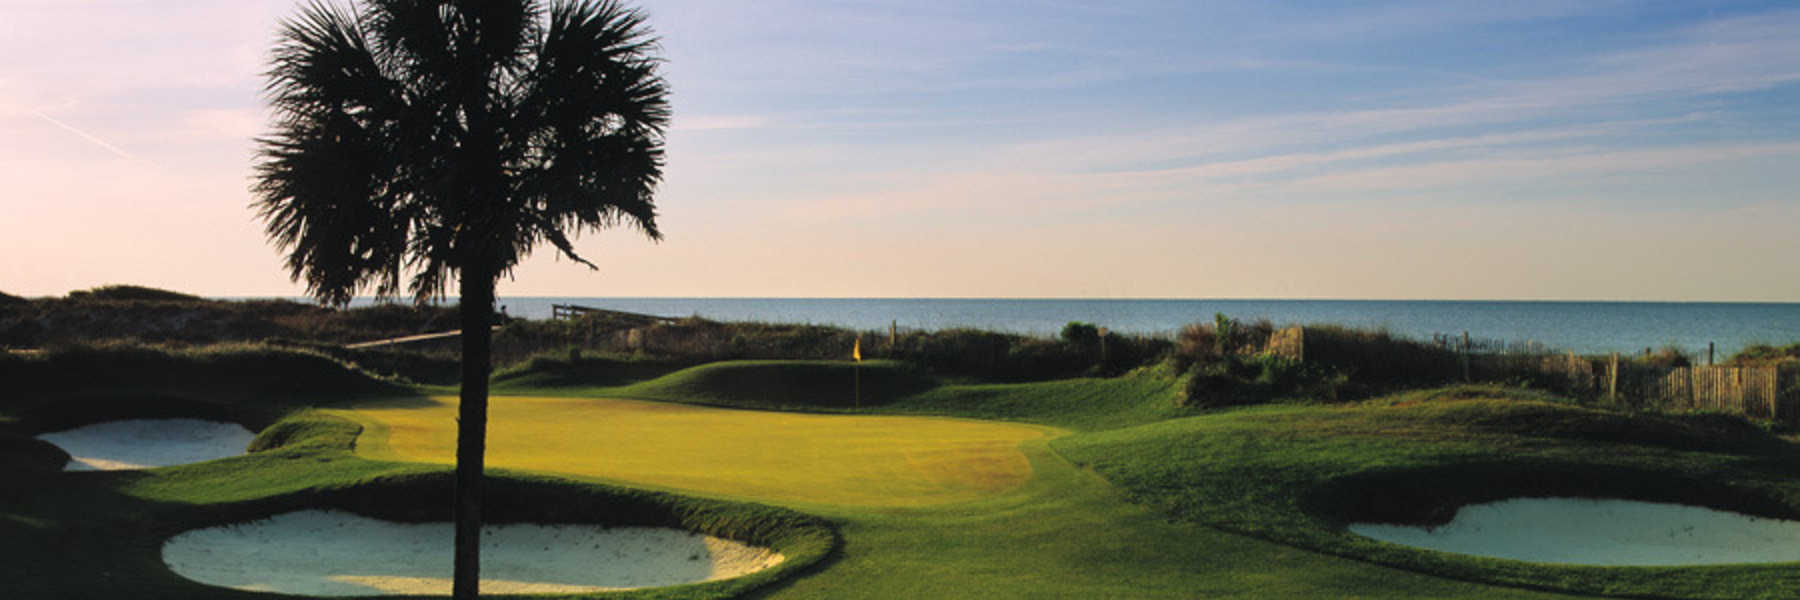 Golf Vacation Package - Kiawah Island Resort Stay and Play - $299 per person, per day!